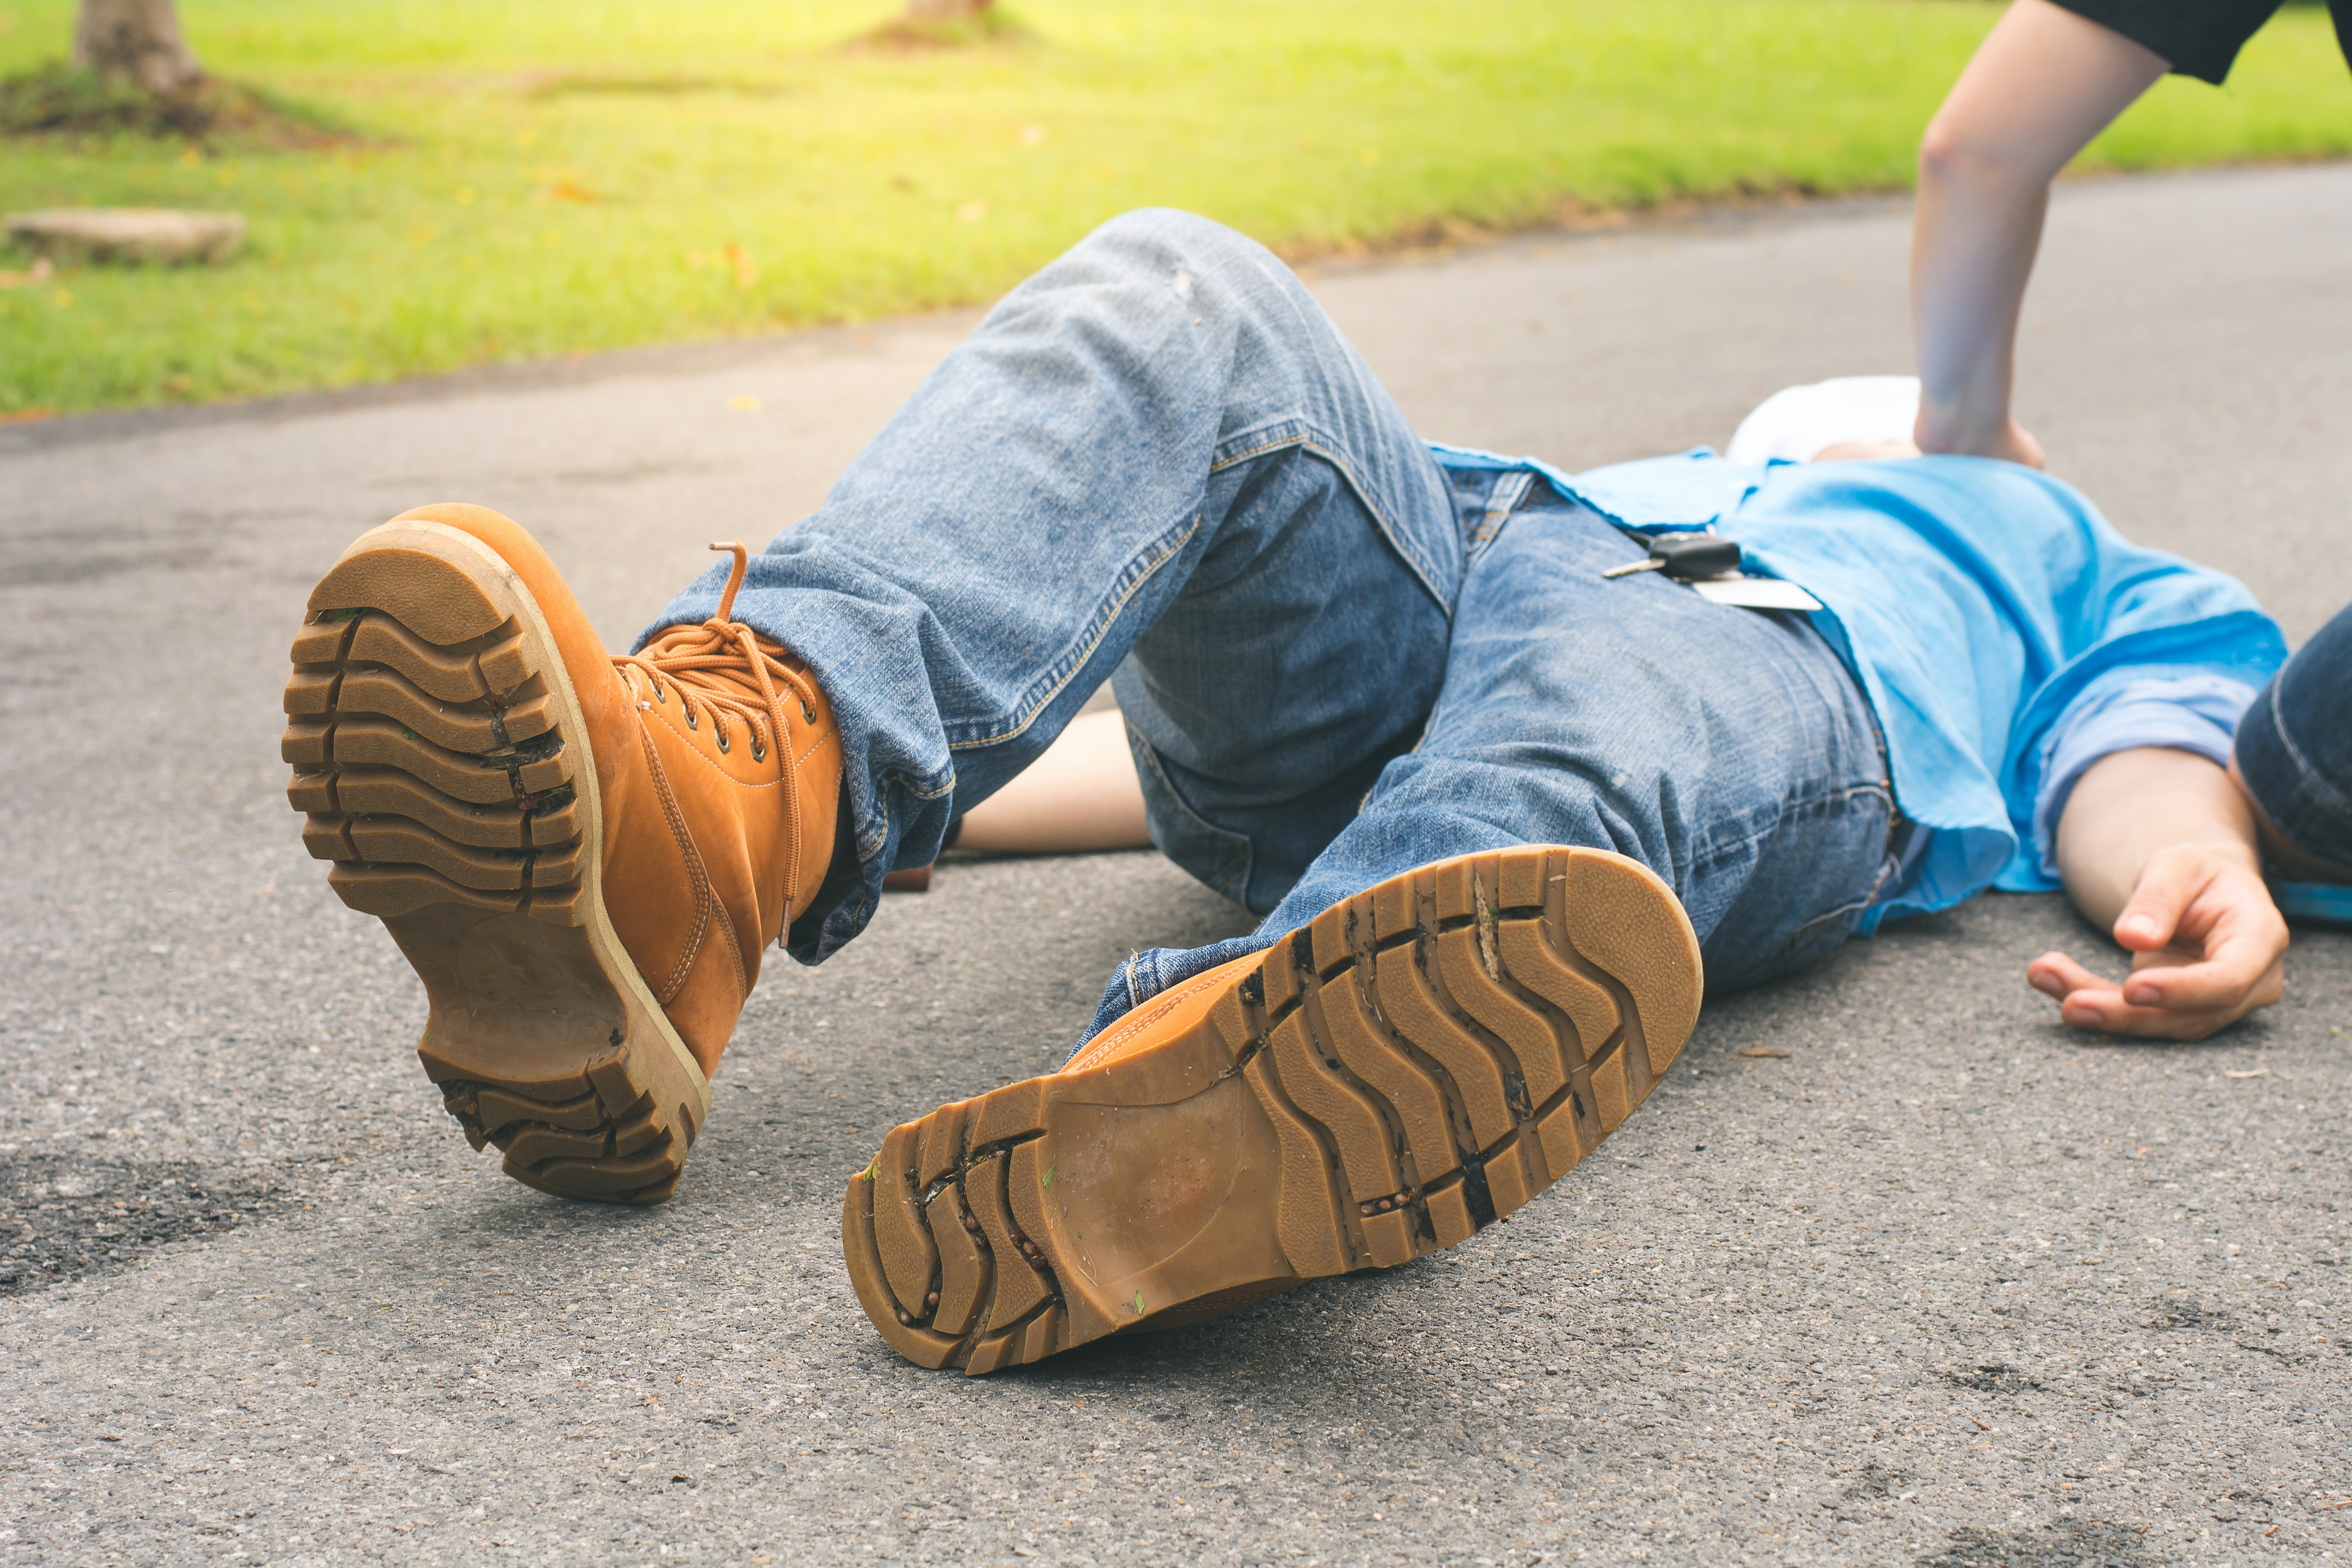 An image depicting a person suffering from fainting after exertion symptoms